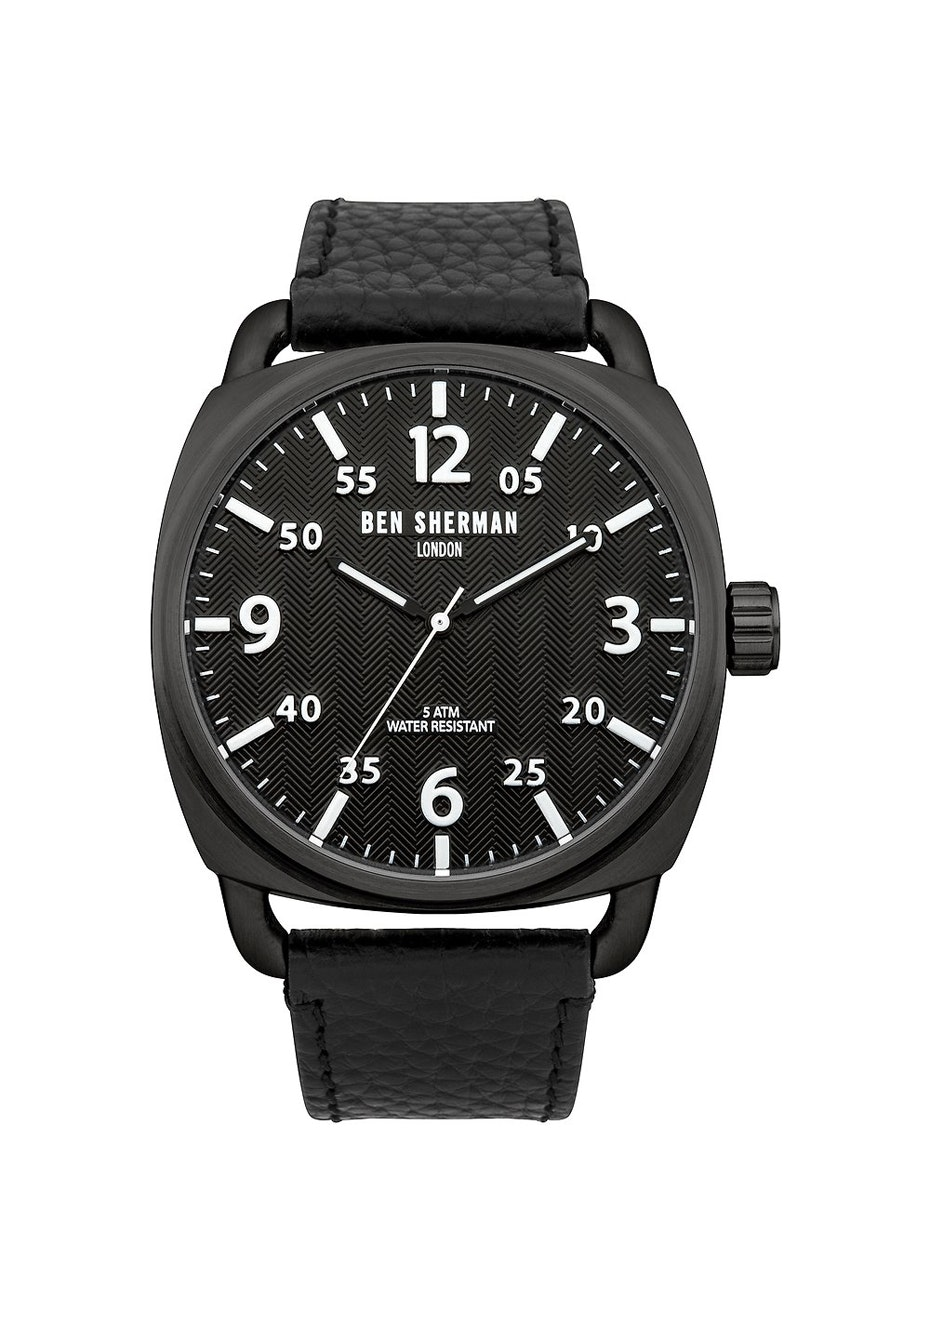 Ben Sherman - Black Leather Watch W Black Dial